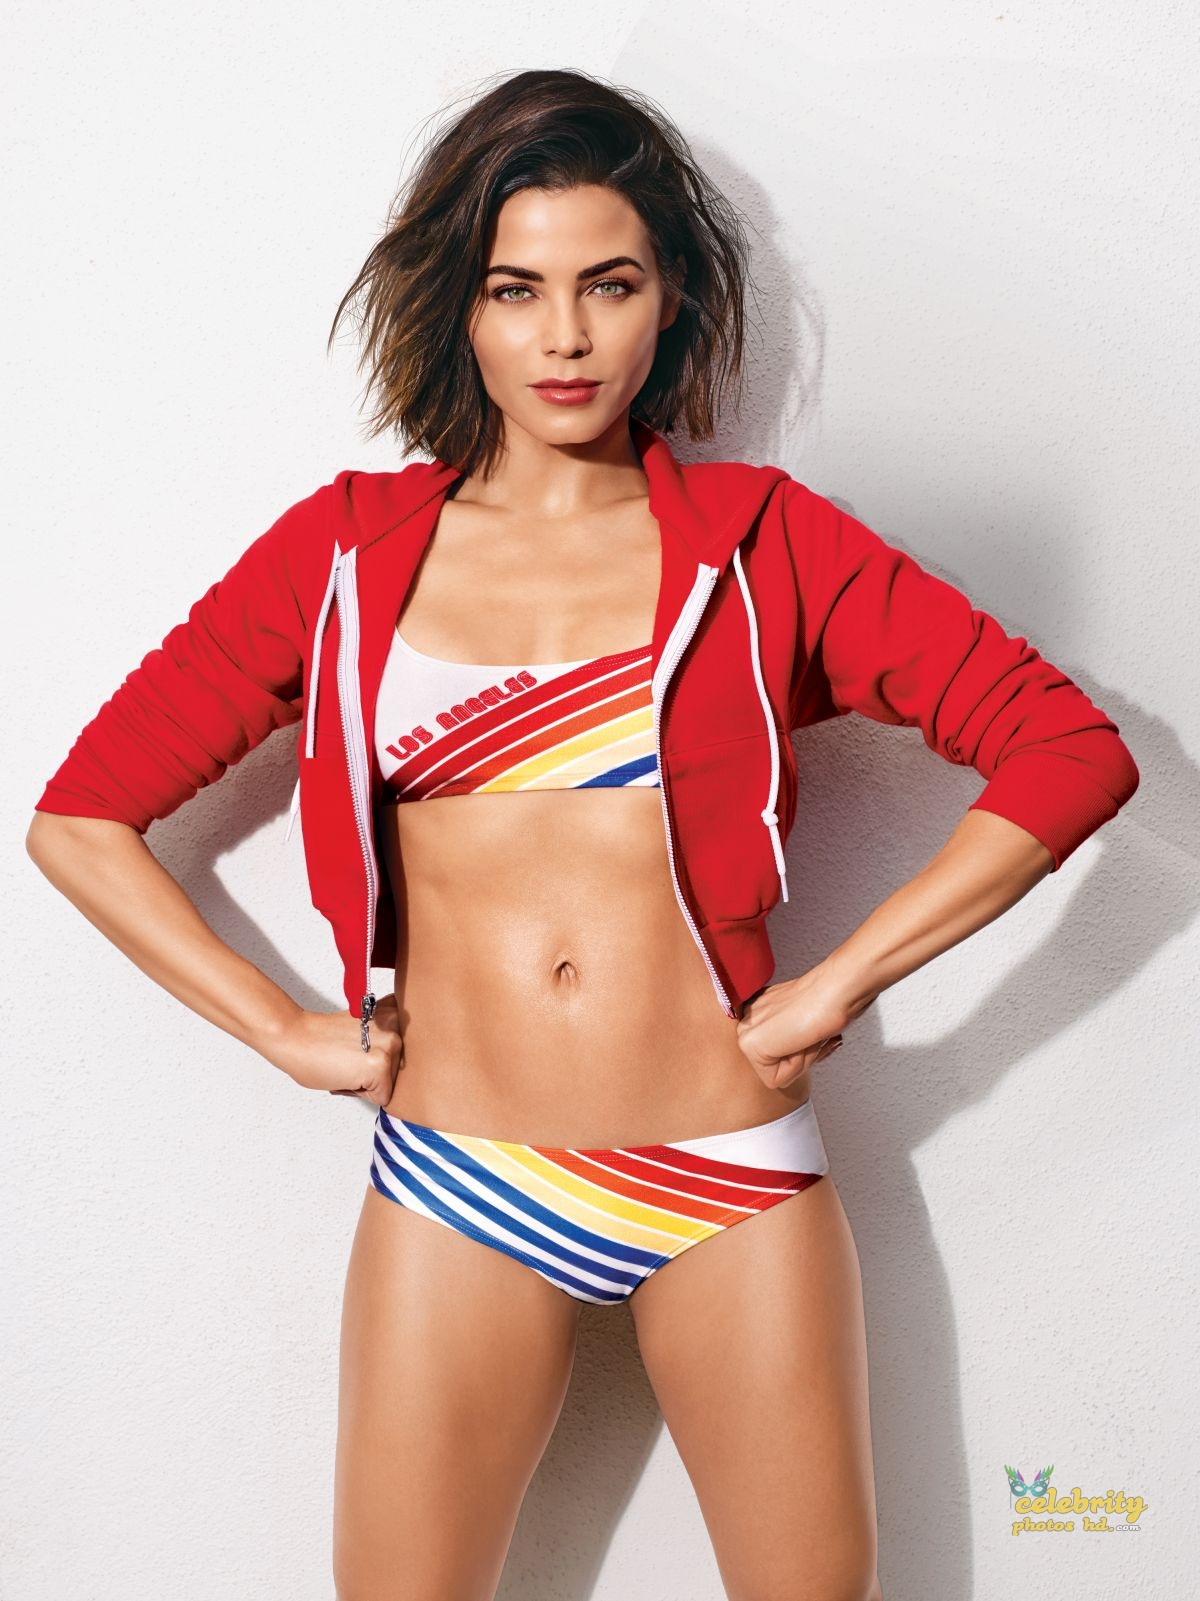 JENNA DEWAN in Health Magazine, (6)